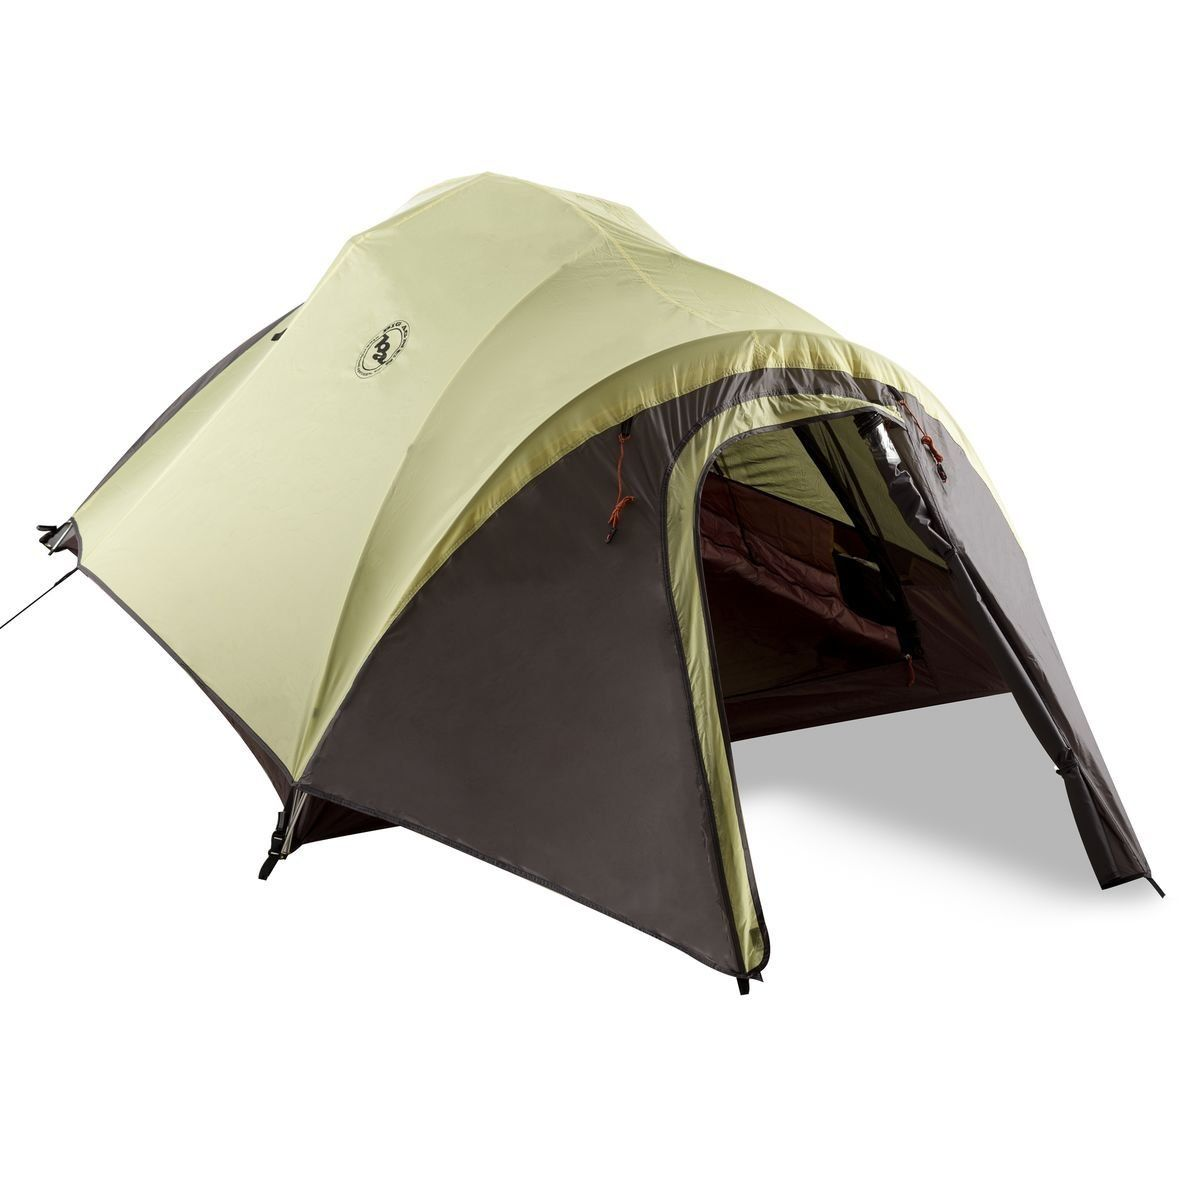 Big Agnes Seedhouse 3 Person Tent w/ Cross-Over Pole and Footprint * You  sc 1 st  Pinterest & Big Agnes Seedhouse 3 Person Tent w/ Cross-Over Pole and Footprint ...